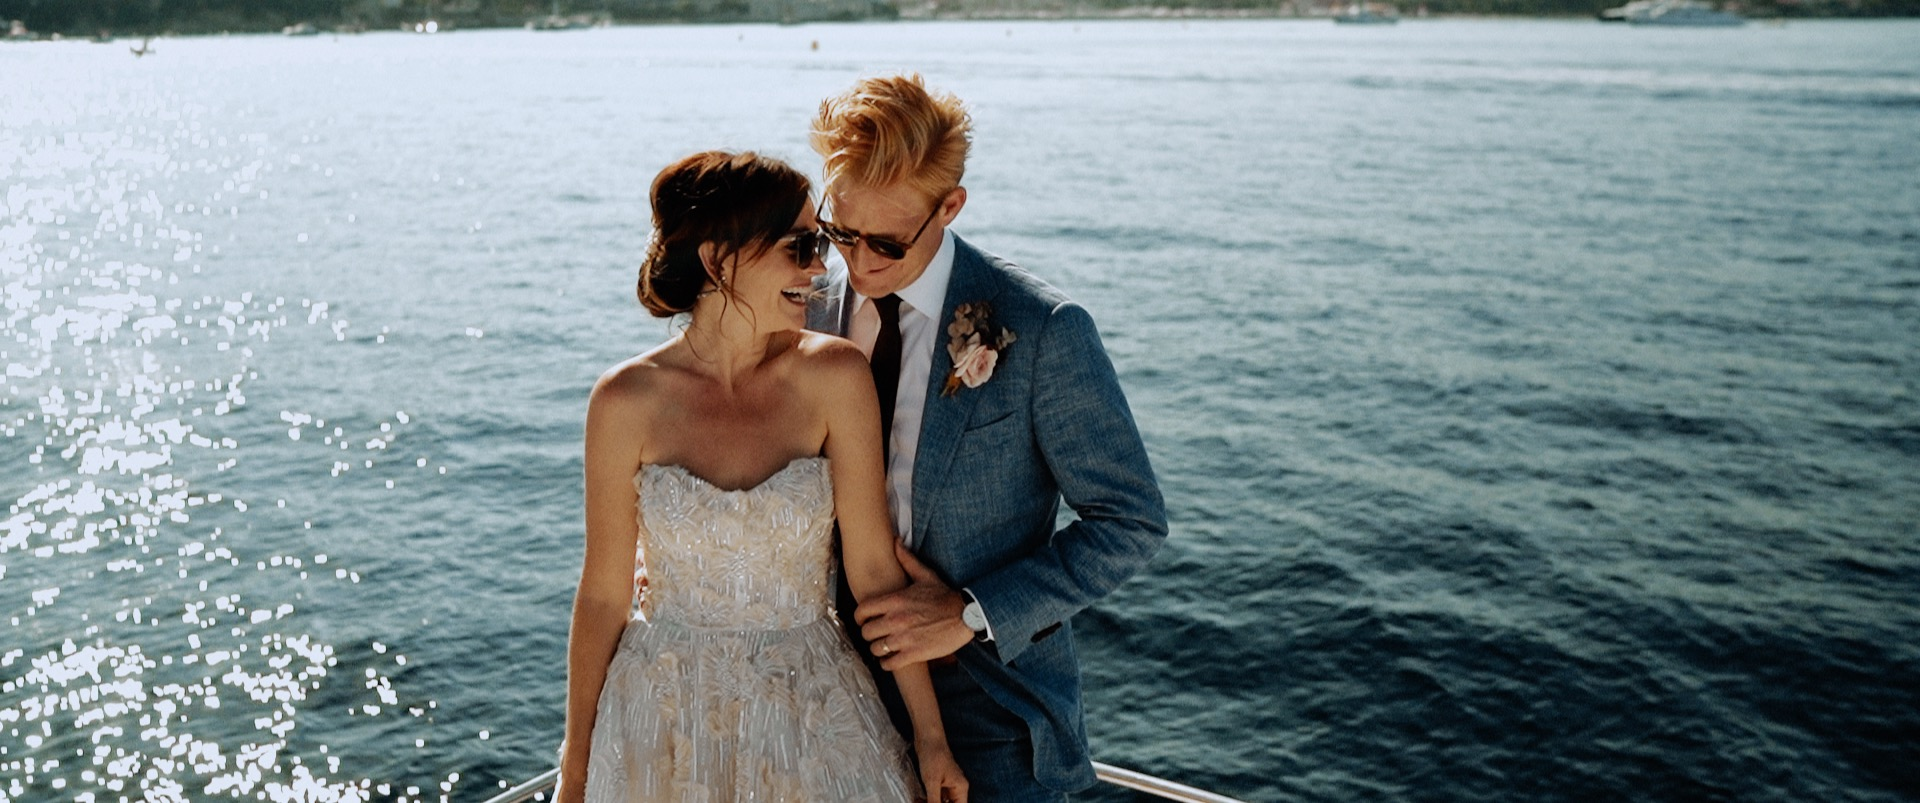 Hilary + Jeremy | Nice, France | Grand Hotel du Cap-Ferrat